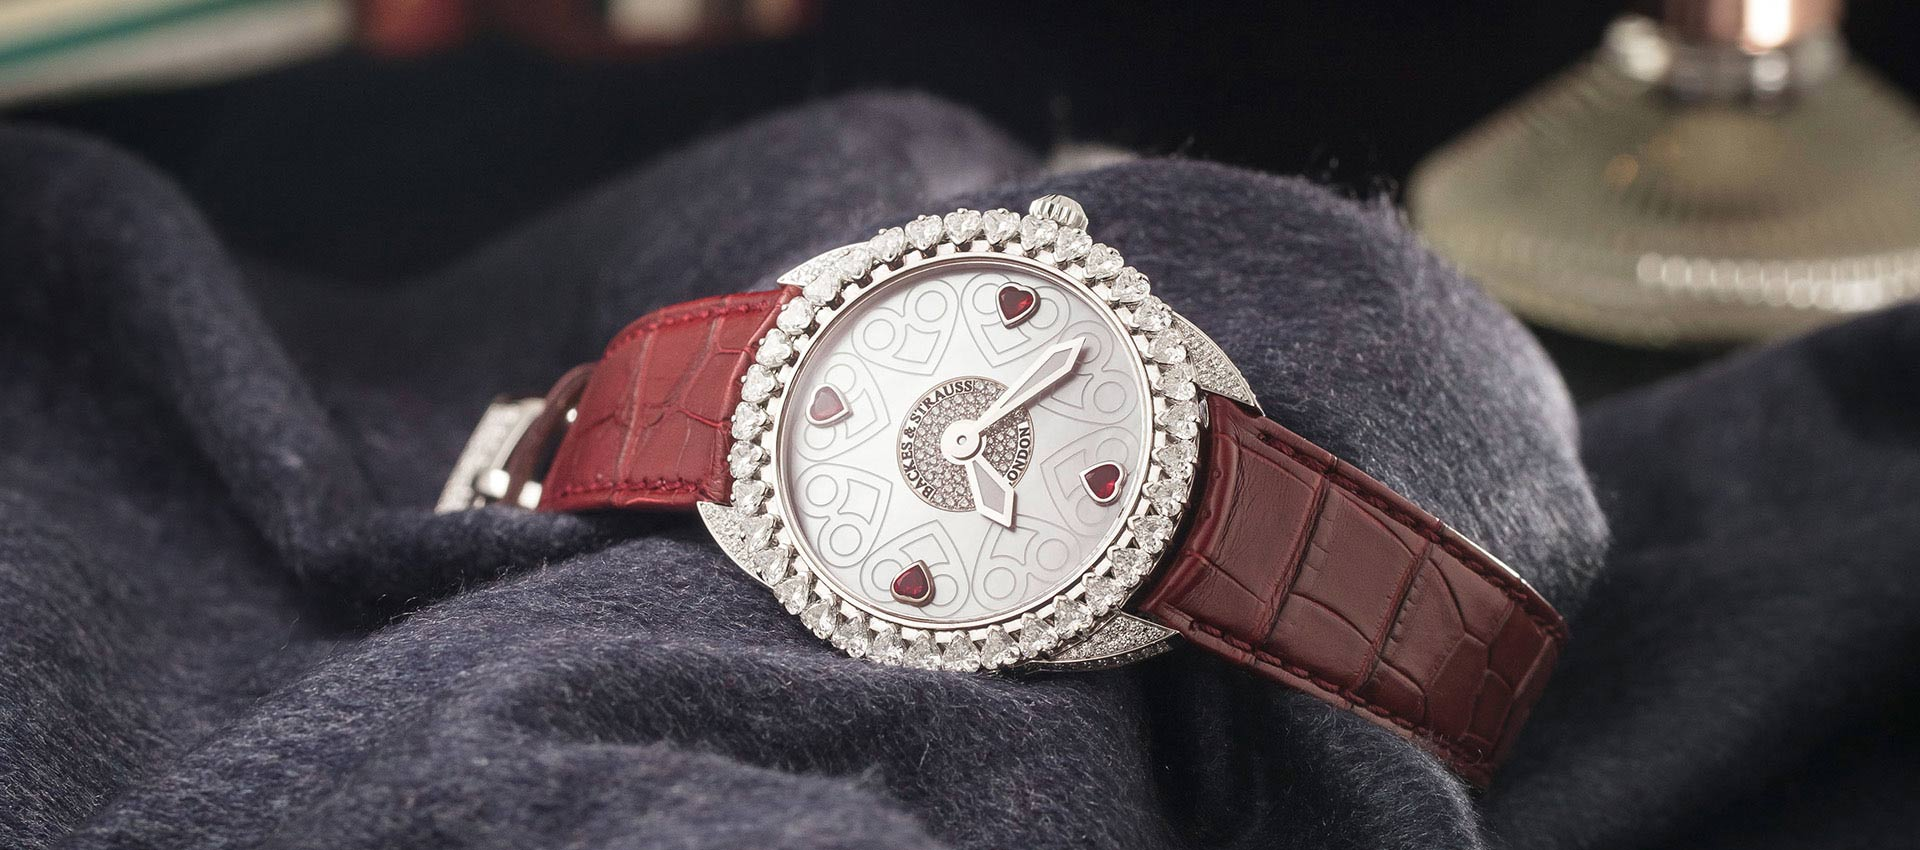 Piccadilly Renaissance diamond heart unique watch for her